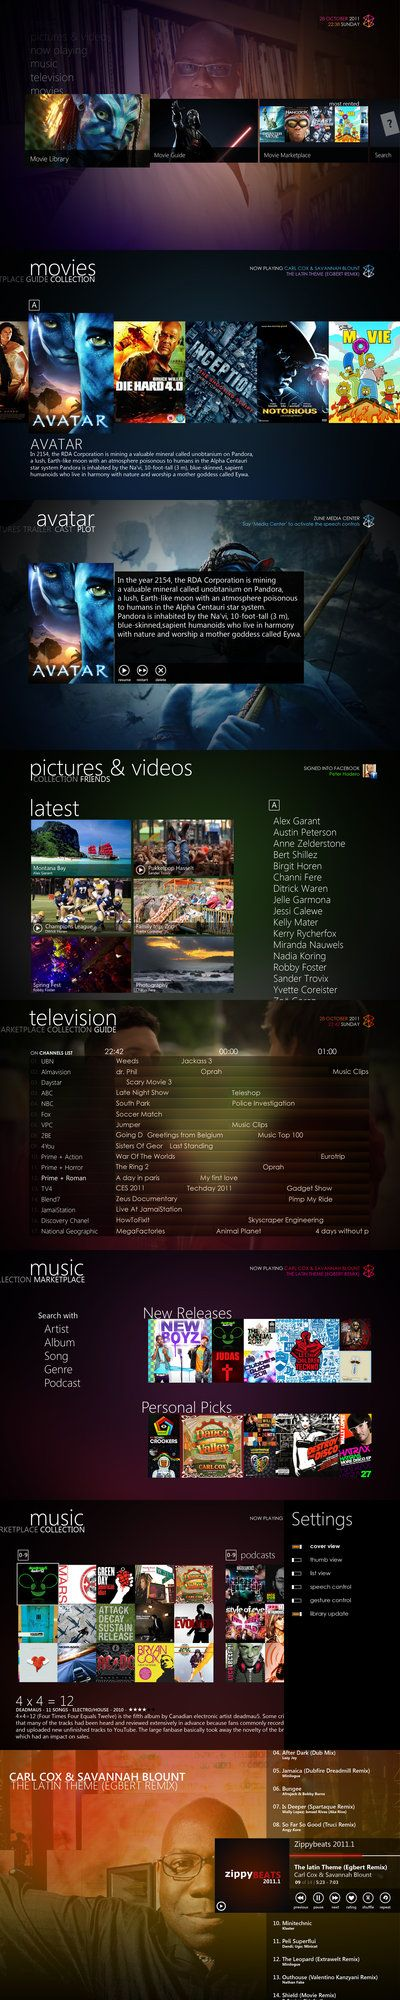 Zune Media Center v2.7 by ~Bonkietje on deviantART